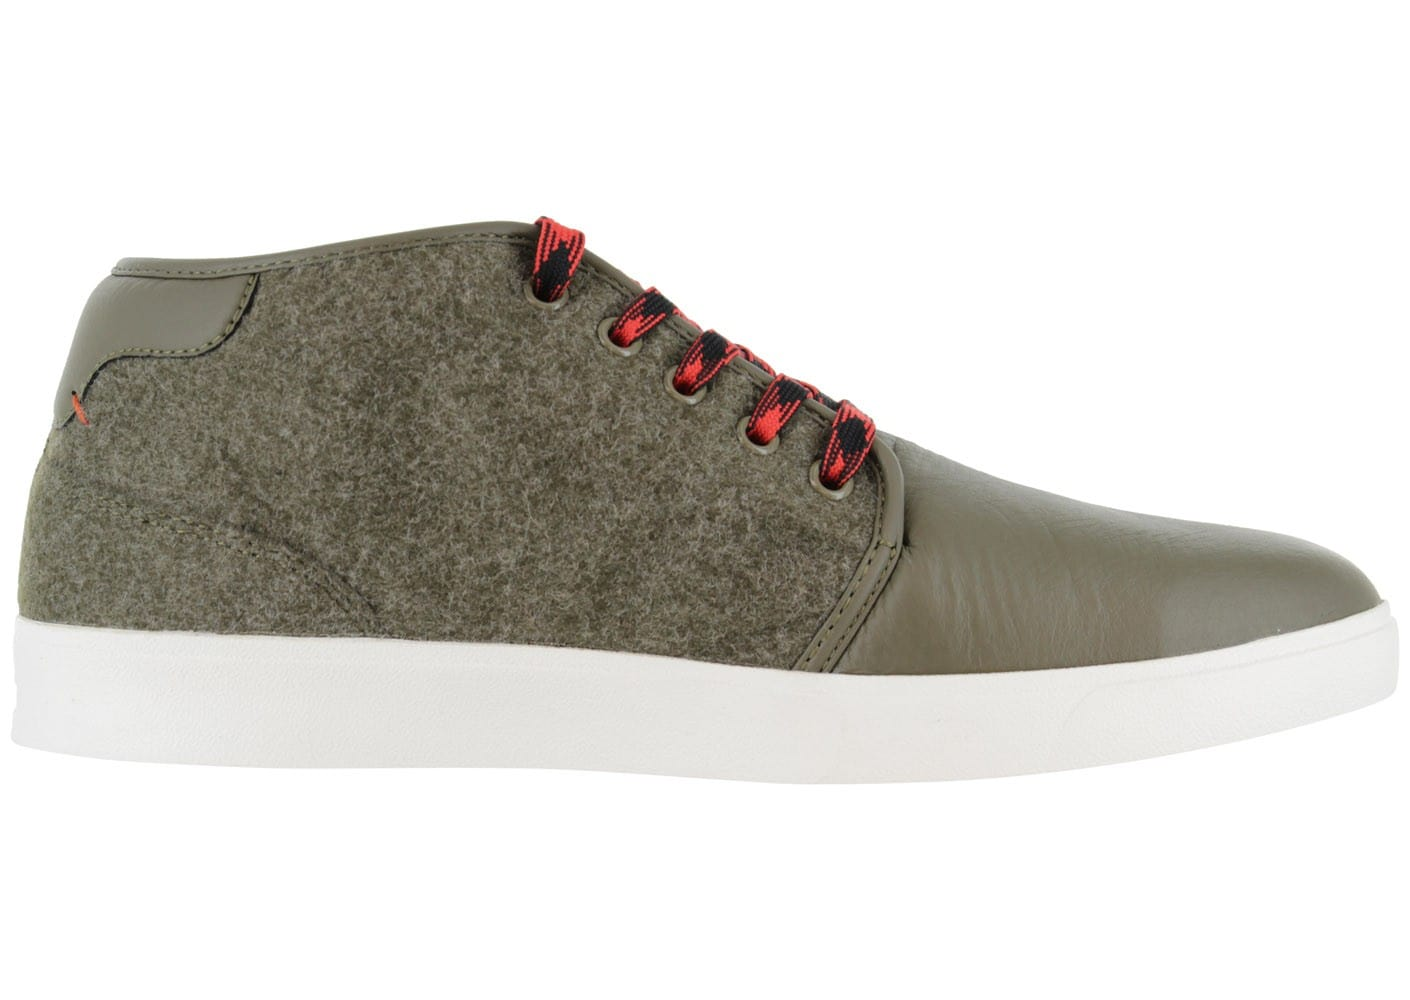 Homme Baskets Chaussures Fas Benoit Kaki Chausport Lacoste b6fYgy7